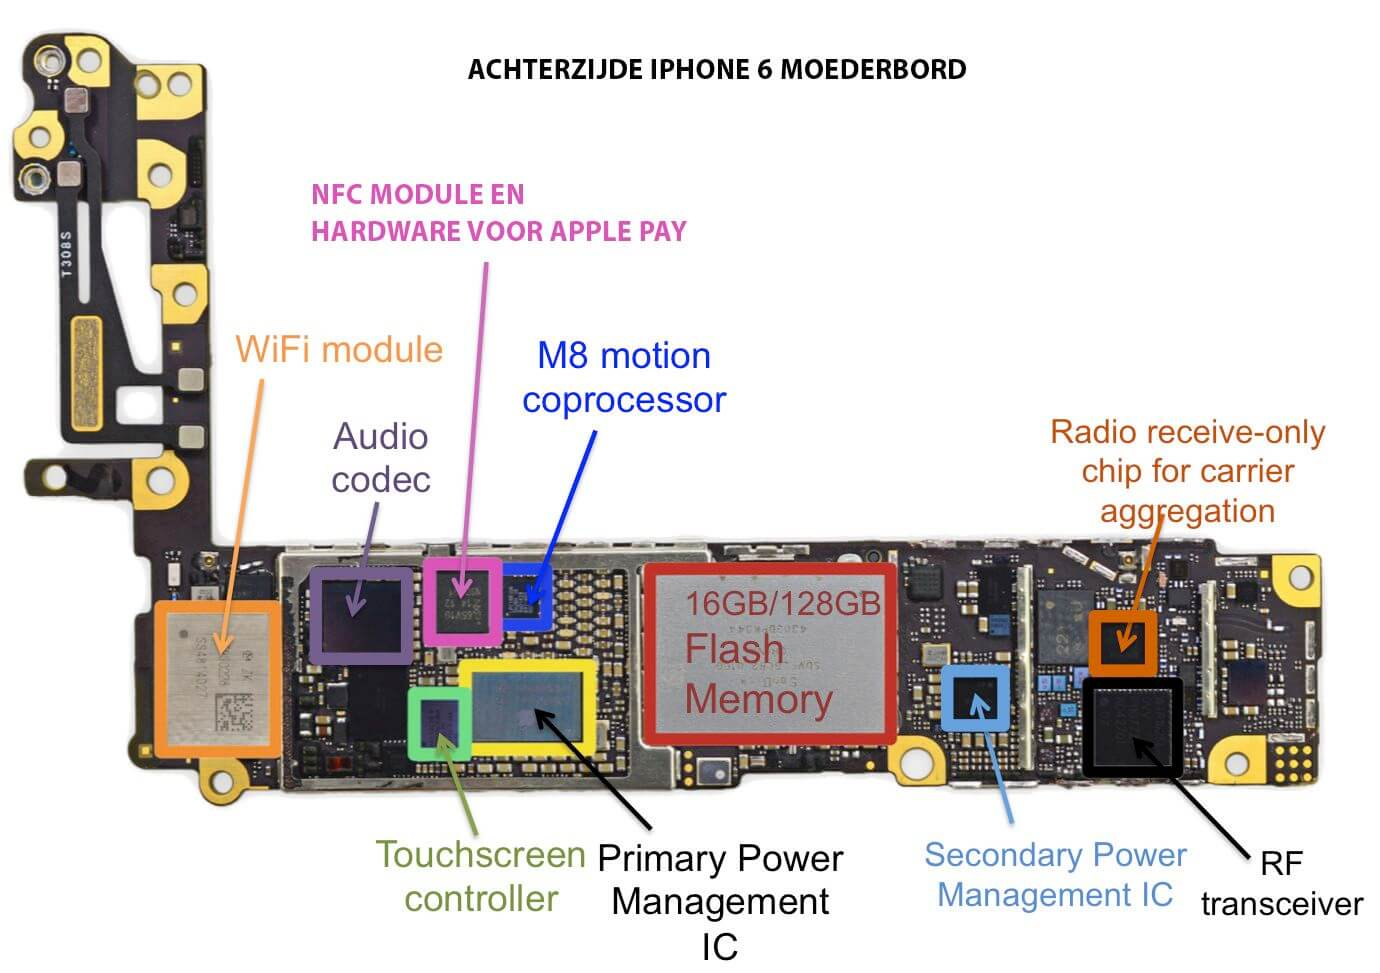 iphone 6 moederbord vervangen kosten